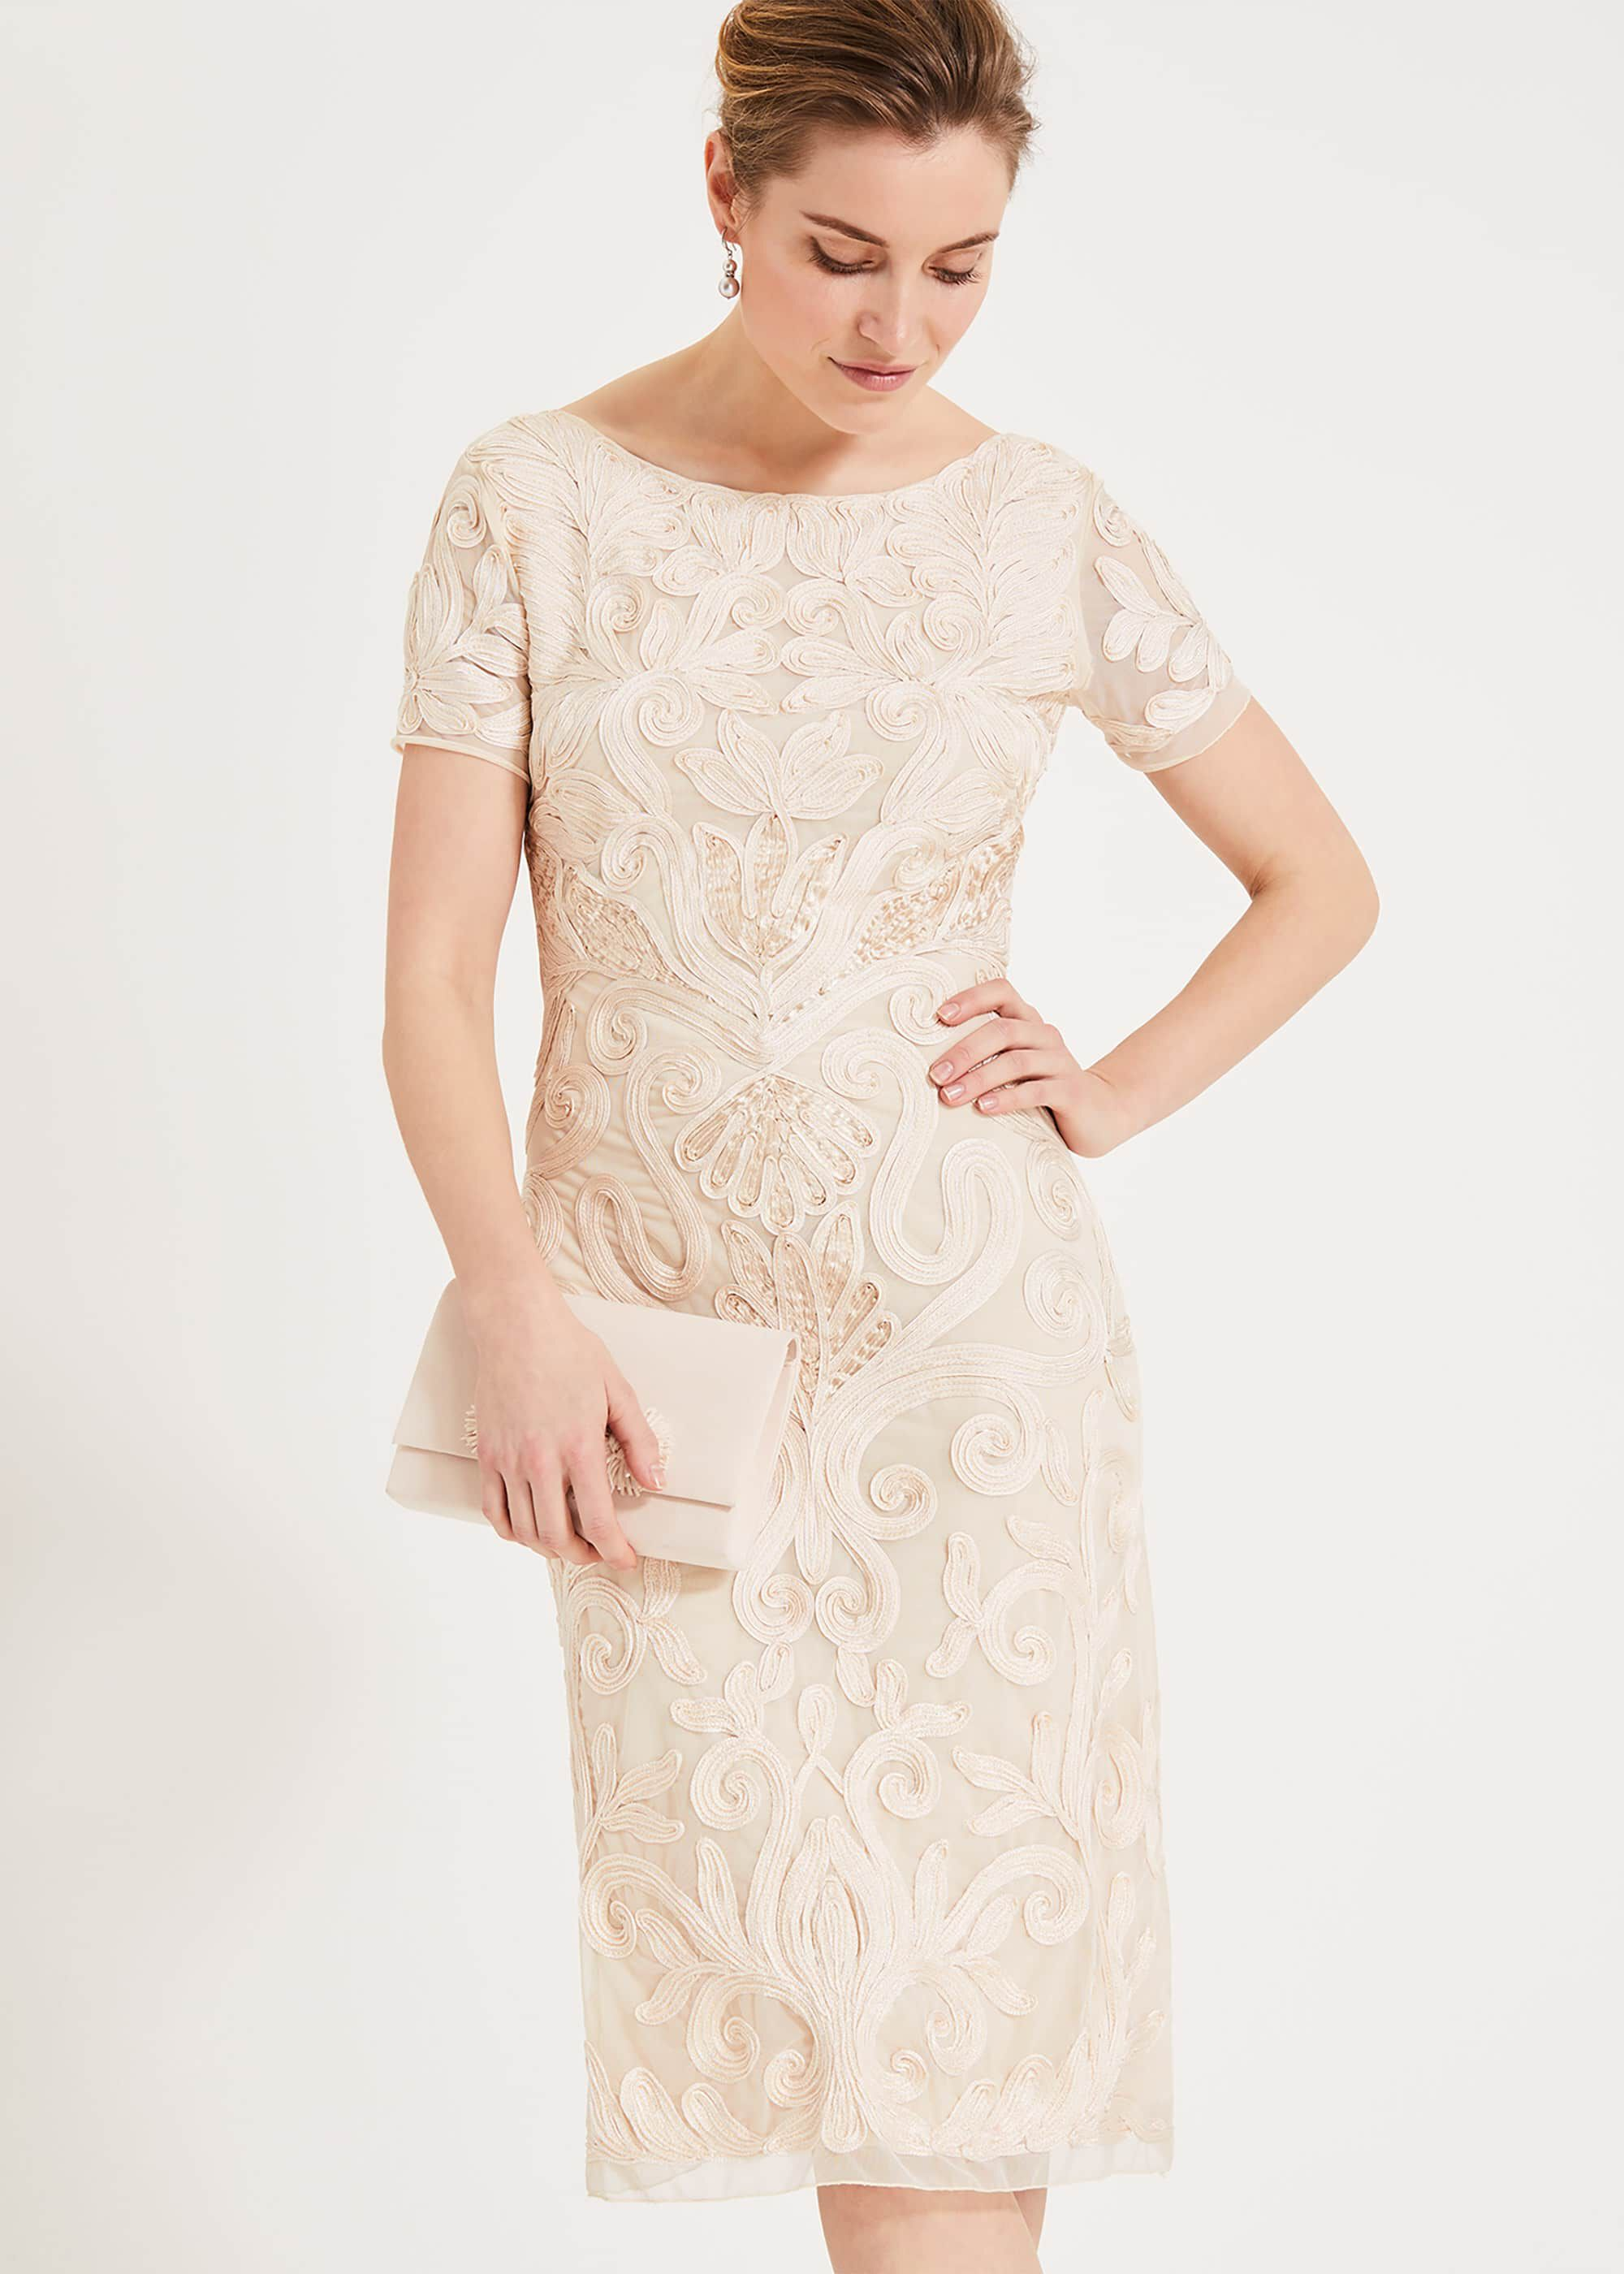 Phase Eight Rosalie Tapework Dress, Cream, Shift, Occasion Dress